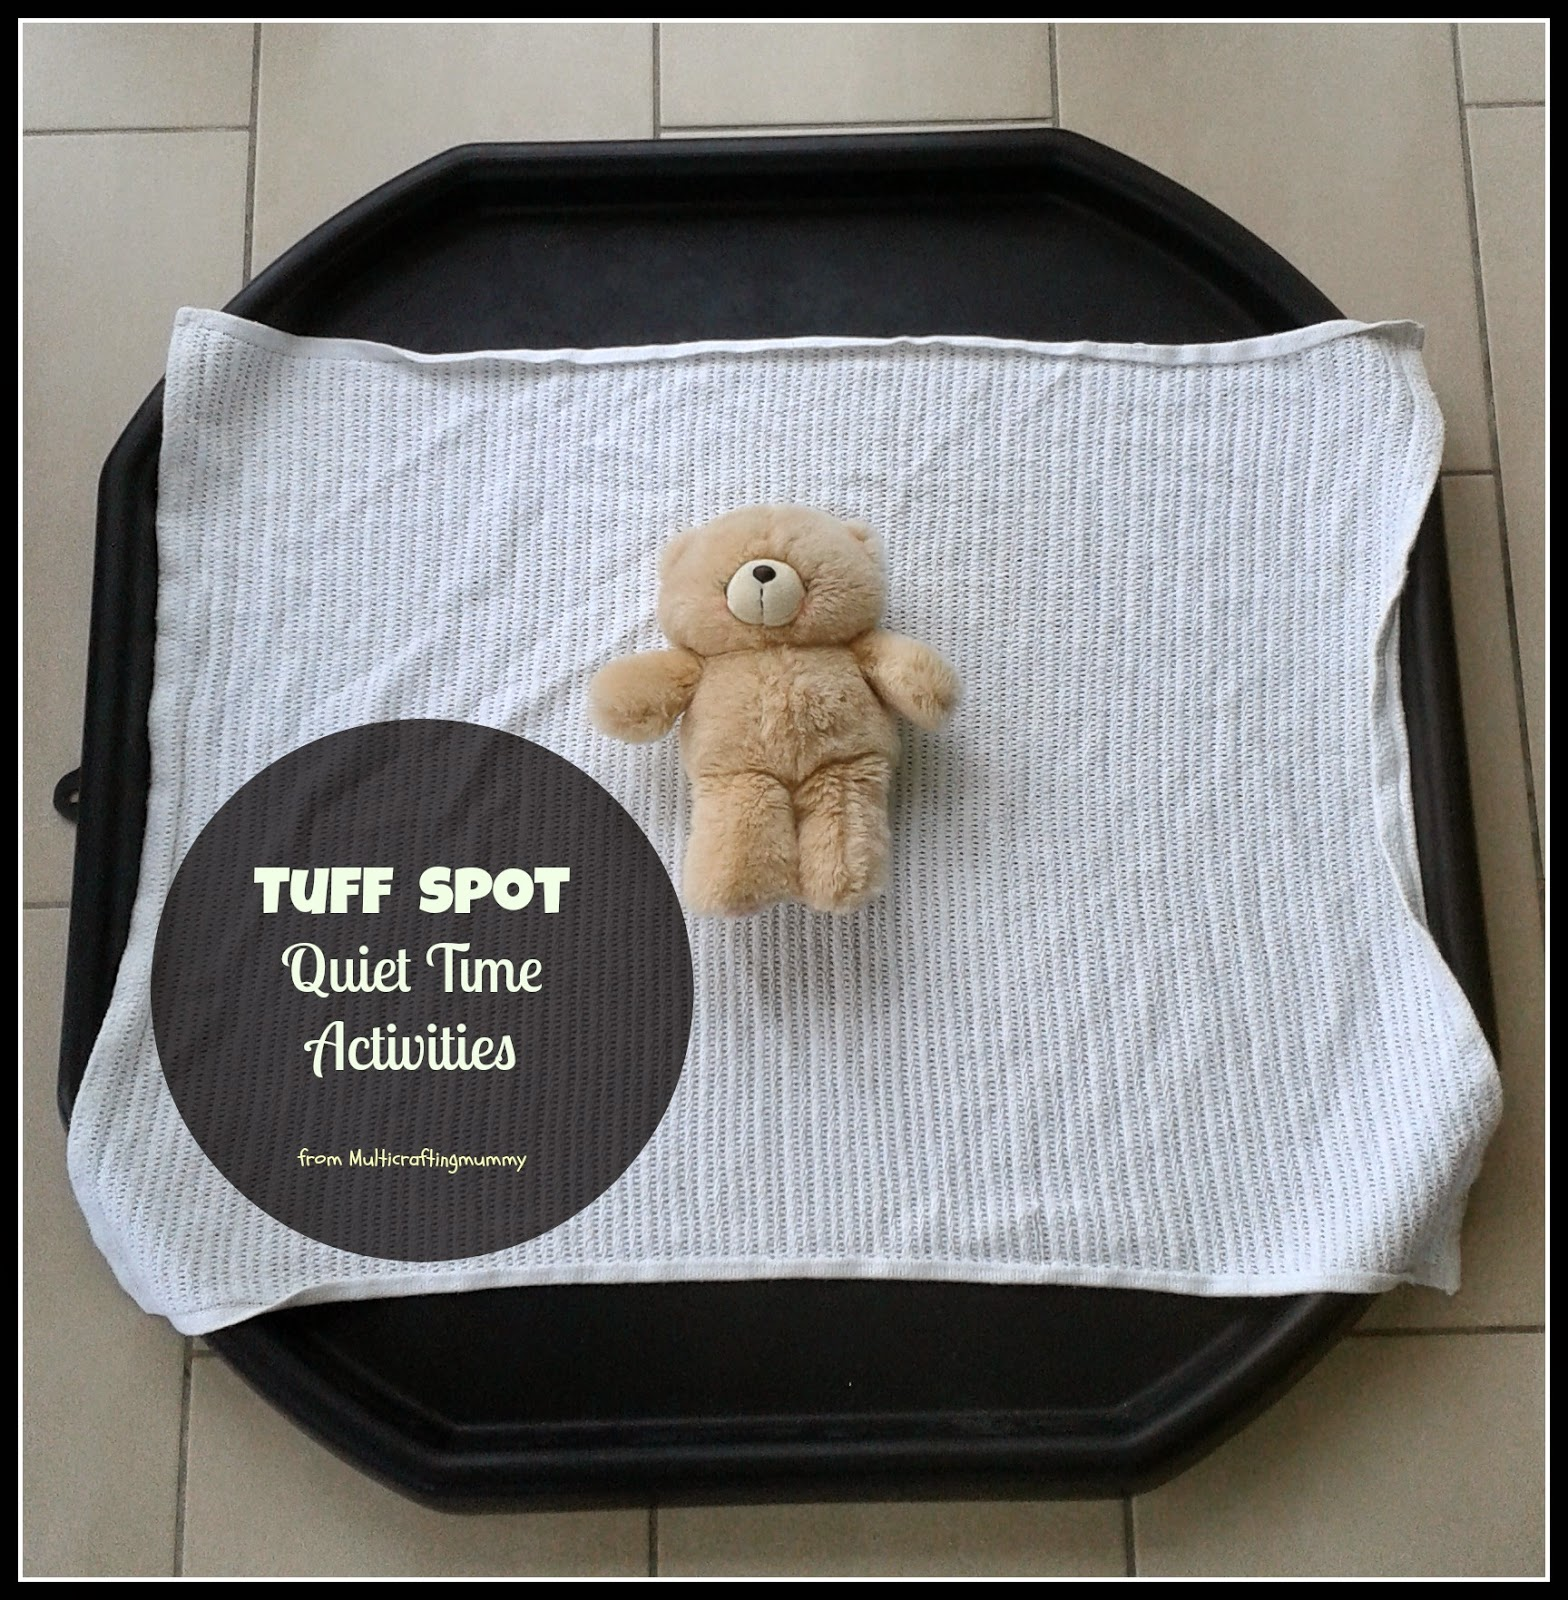 Adventures of Adam Quiet Time Tuff Spot